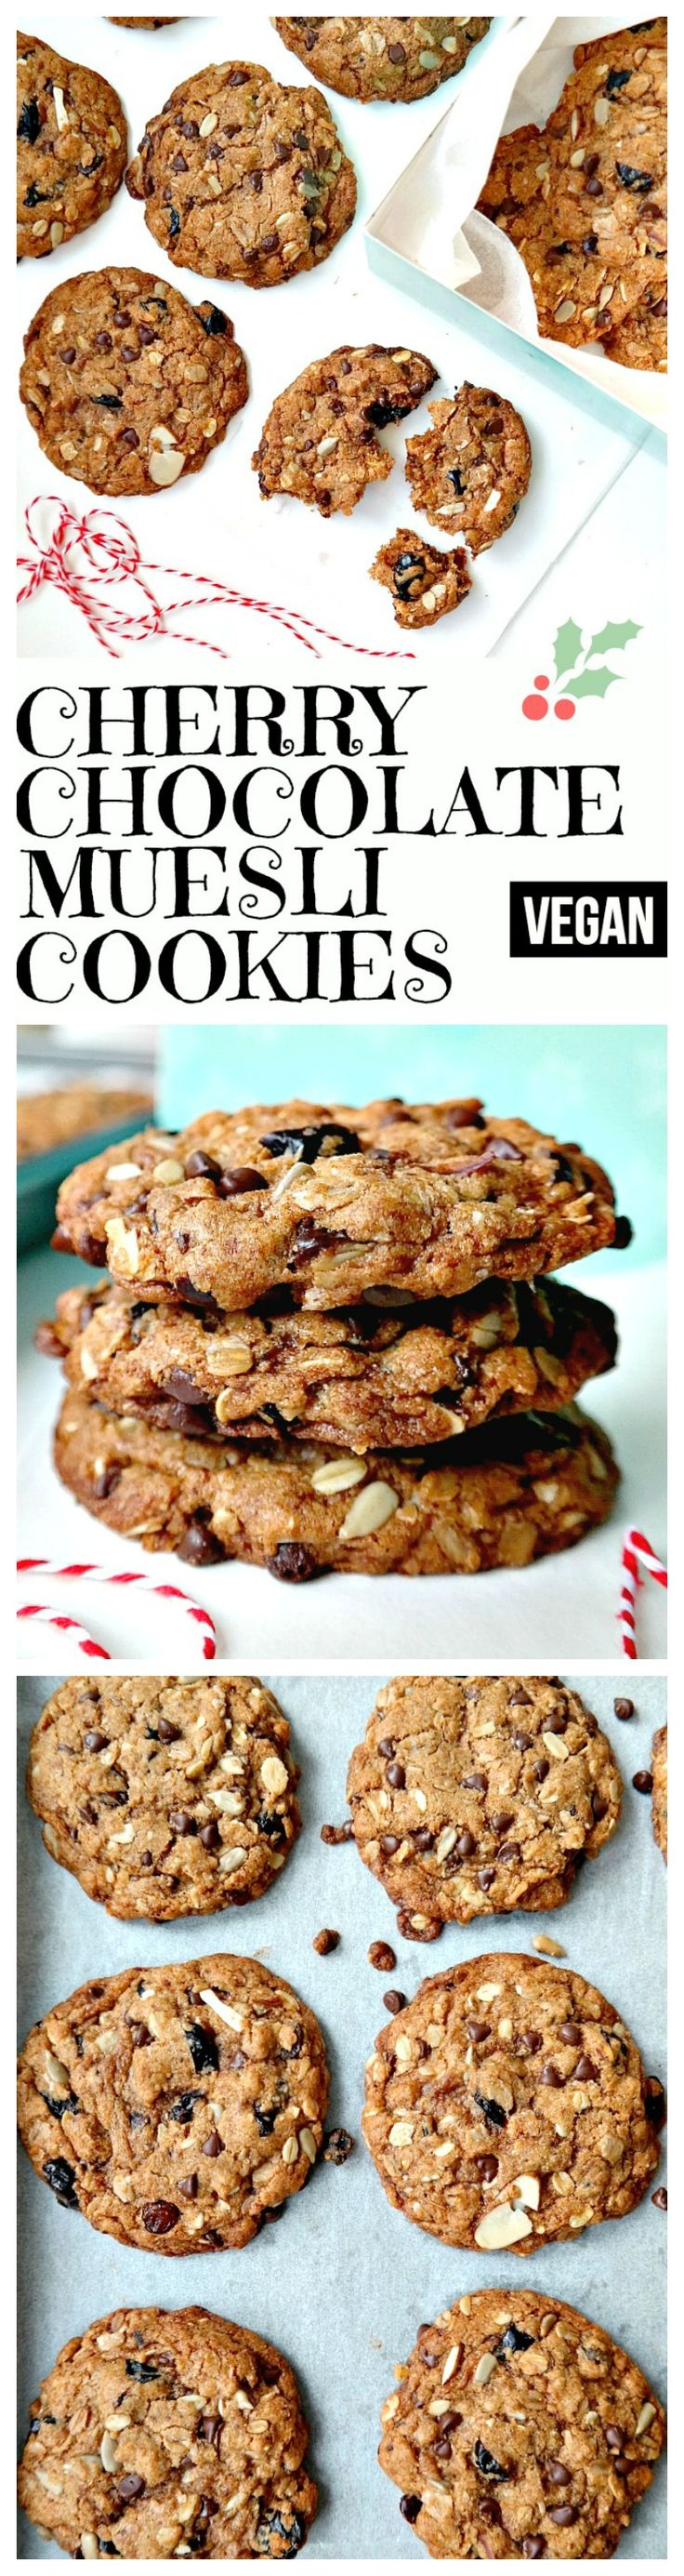 Cherry Chocolate Muesli Cookies. VEGAN. Crunchy on the outside, chewy on the inside. Bites of wholesome golden goodness with tart dried cherries, chocolate chips, date crumbles, chewy raisins and crunchy oats. Easy to bake and absolutely delicious! From The Glowing Fridge.